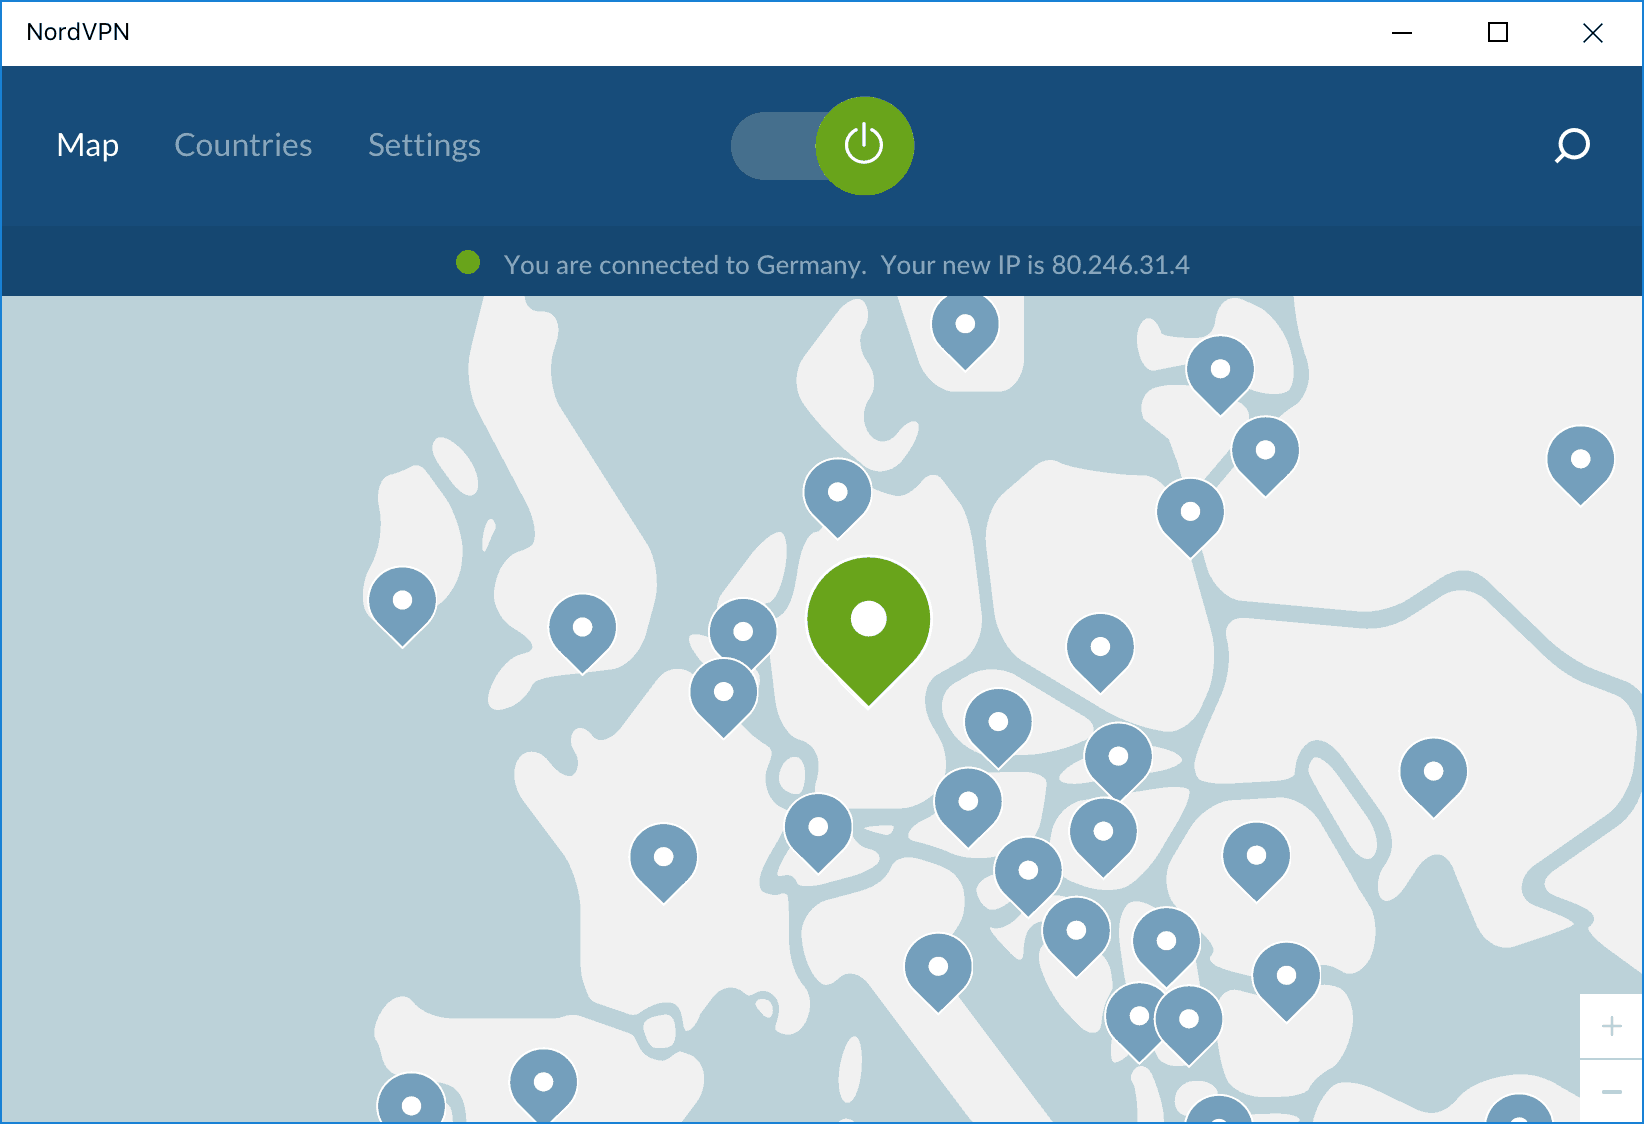 NordVPN - You are connected to Germany